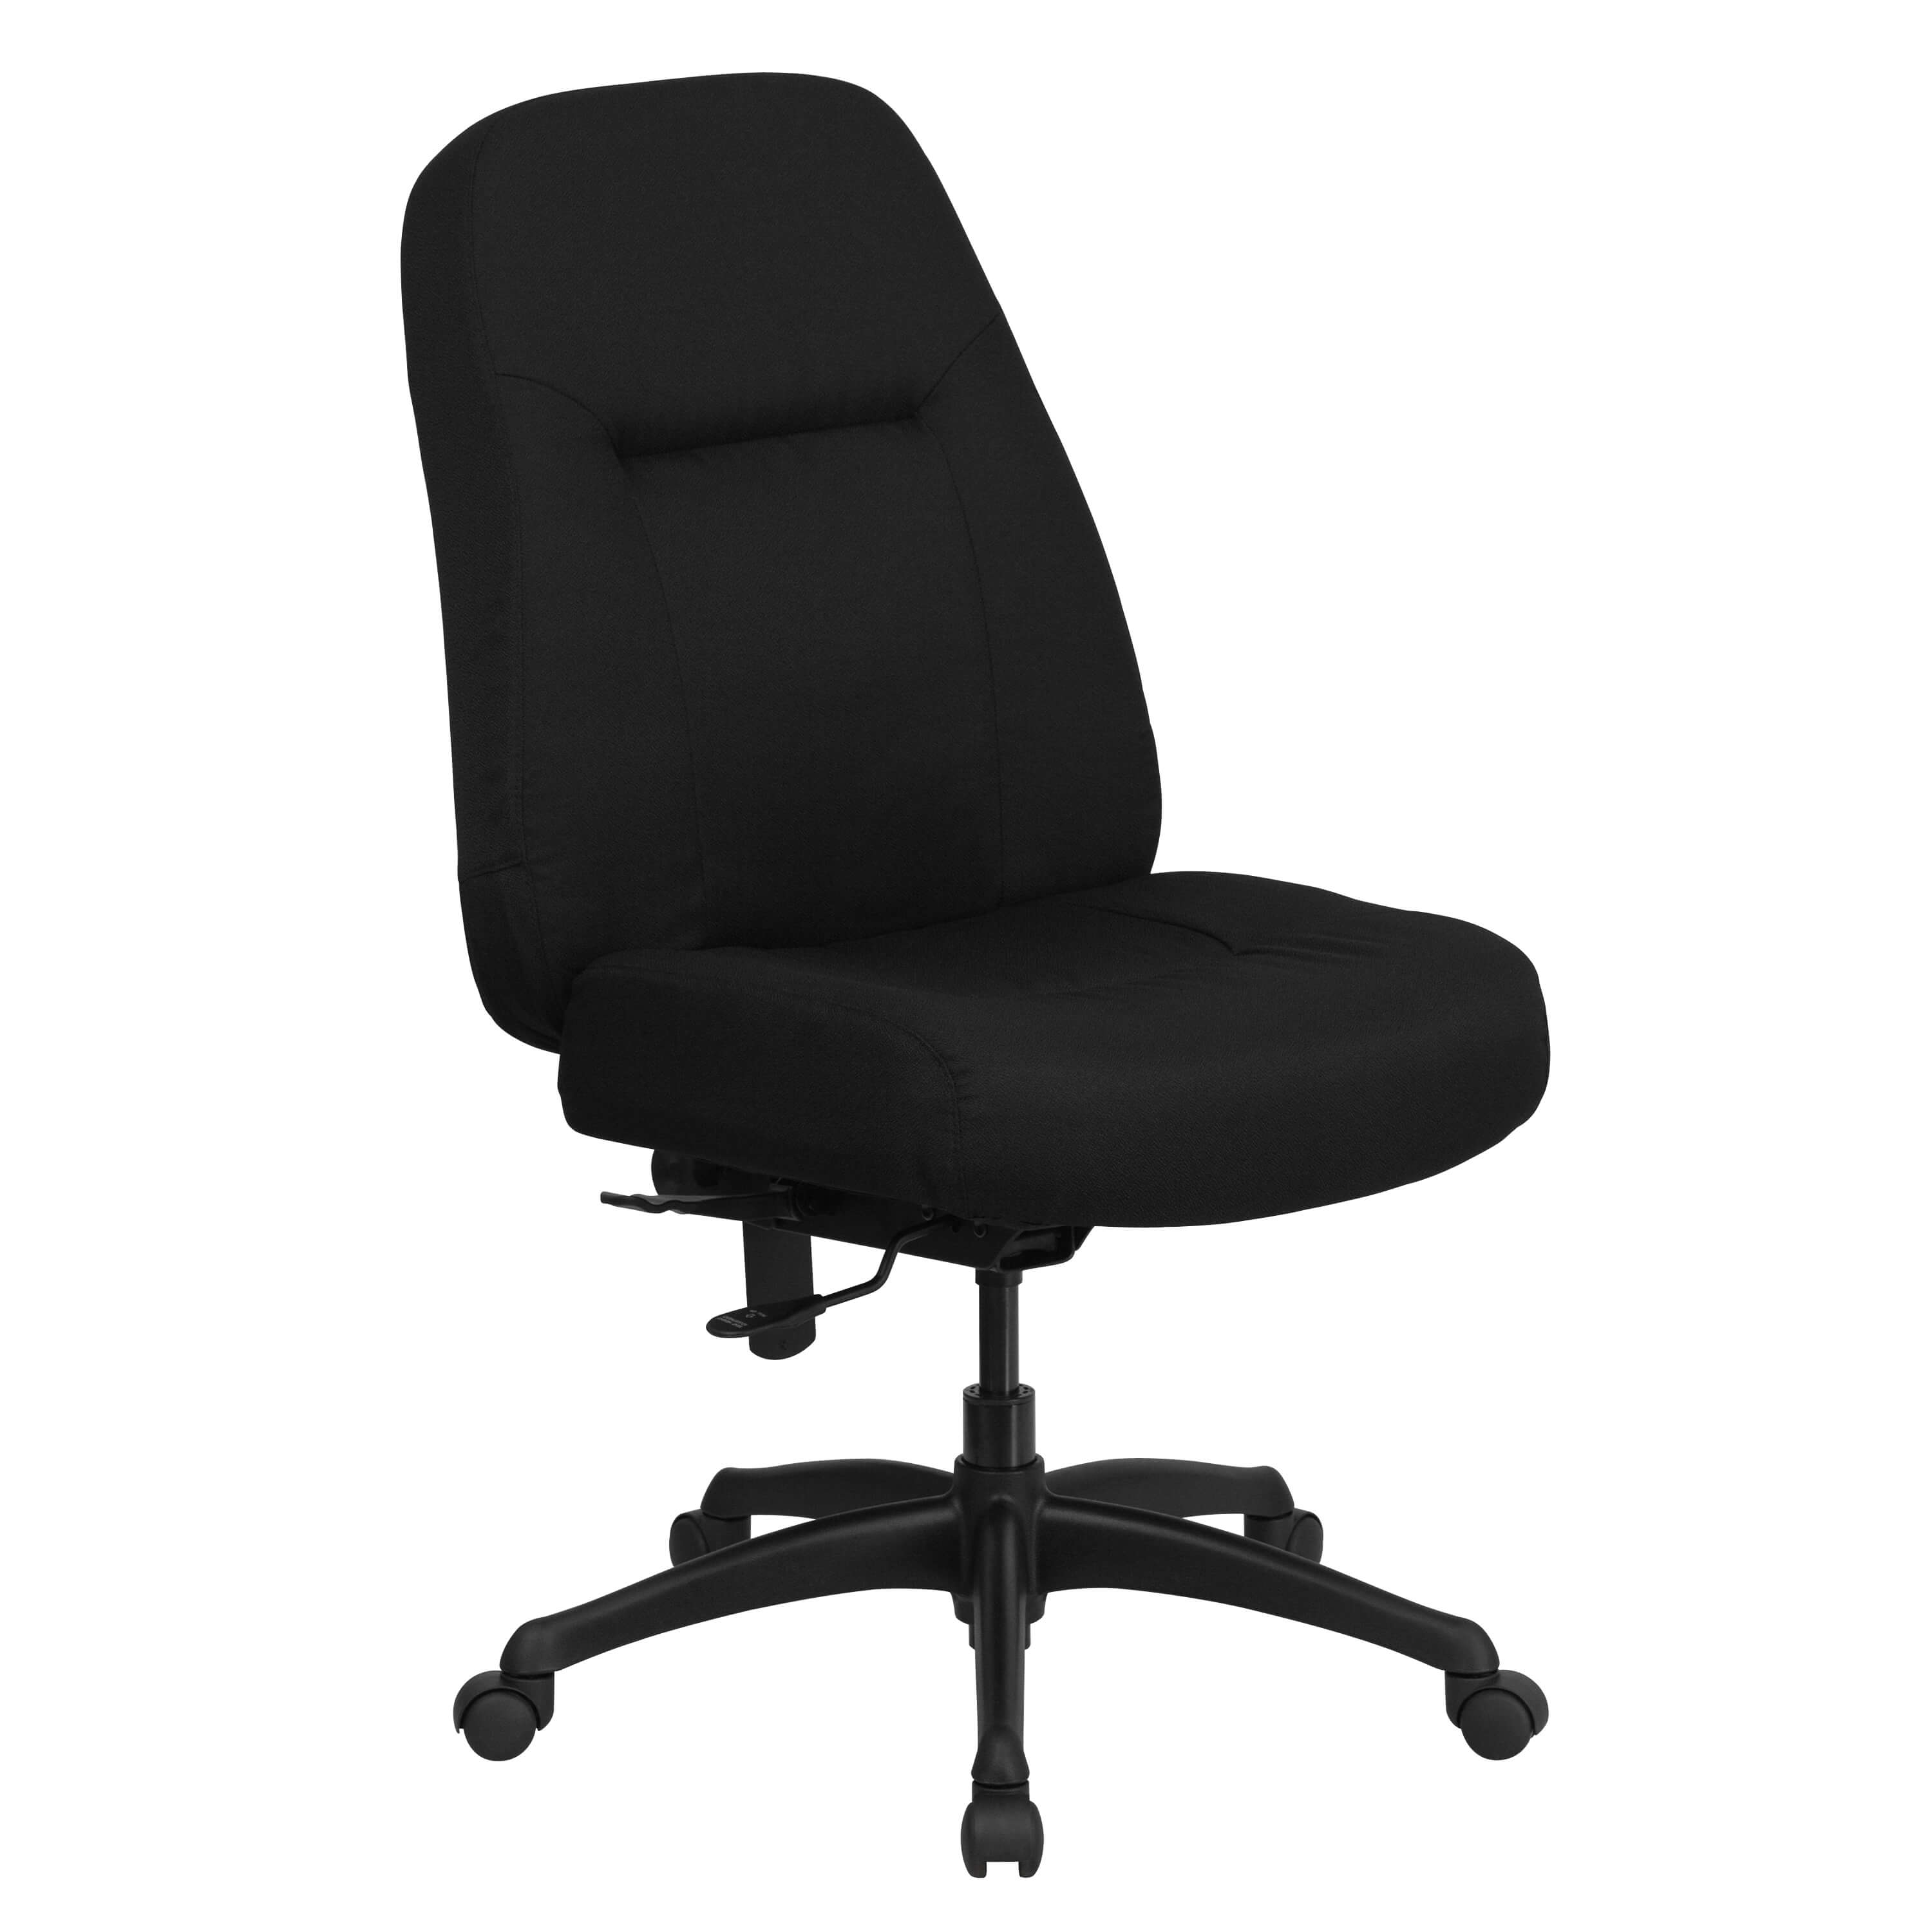 big-and-tall-office-chairs-400-lb-capacity-office-chair.jpg